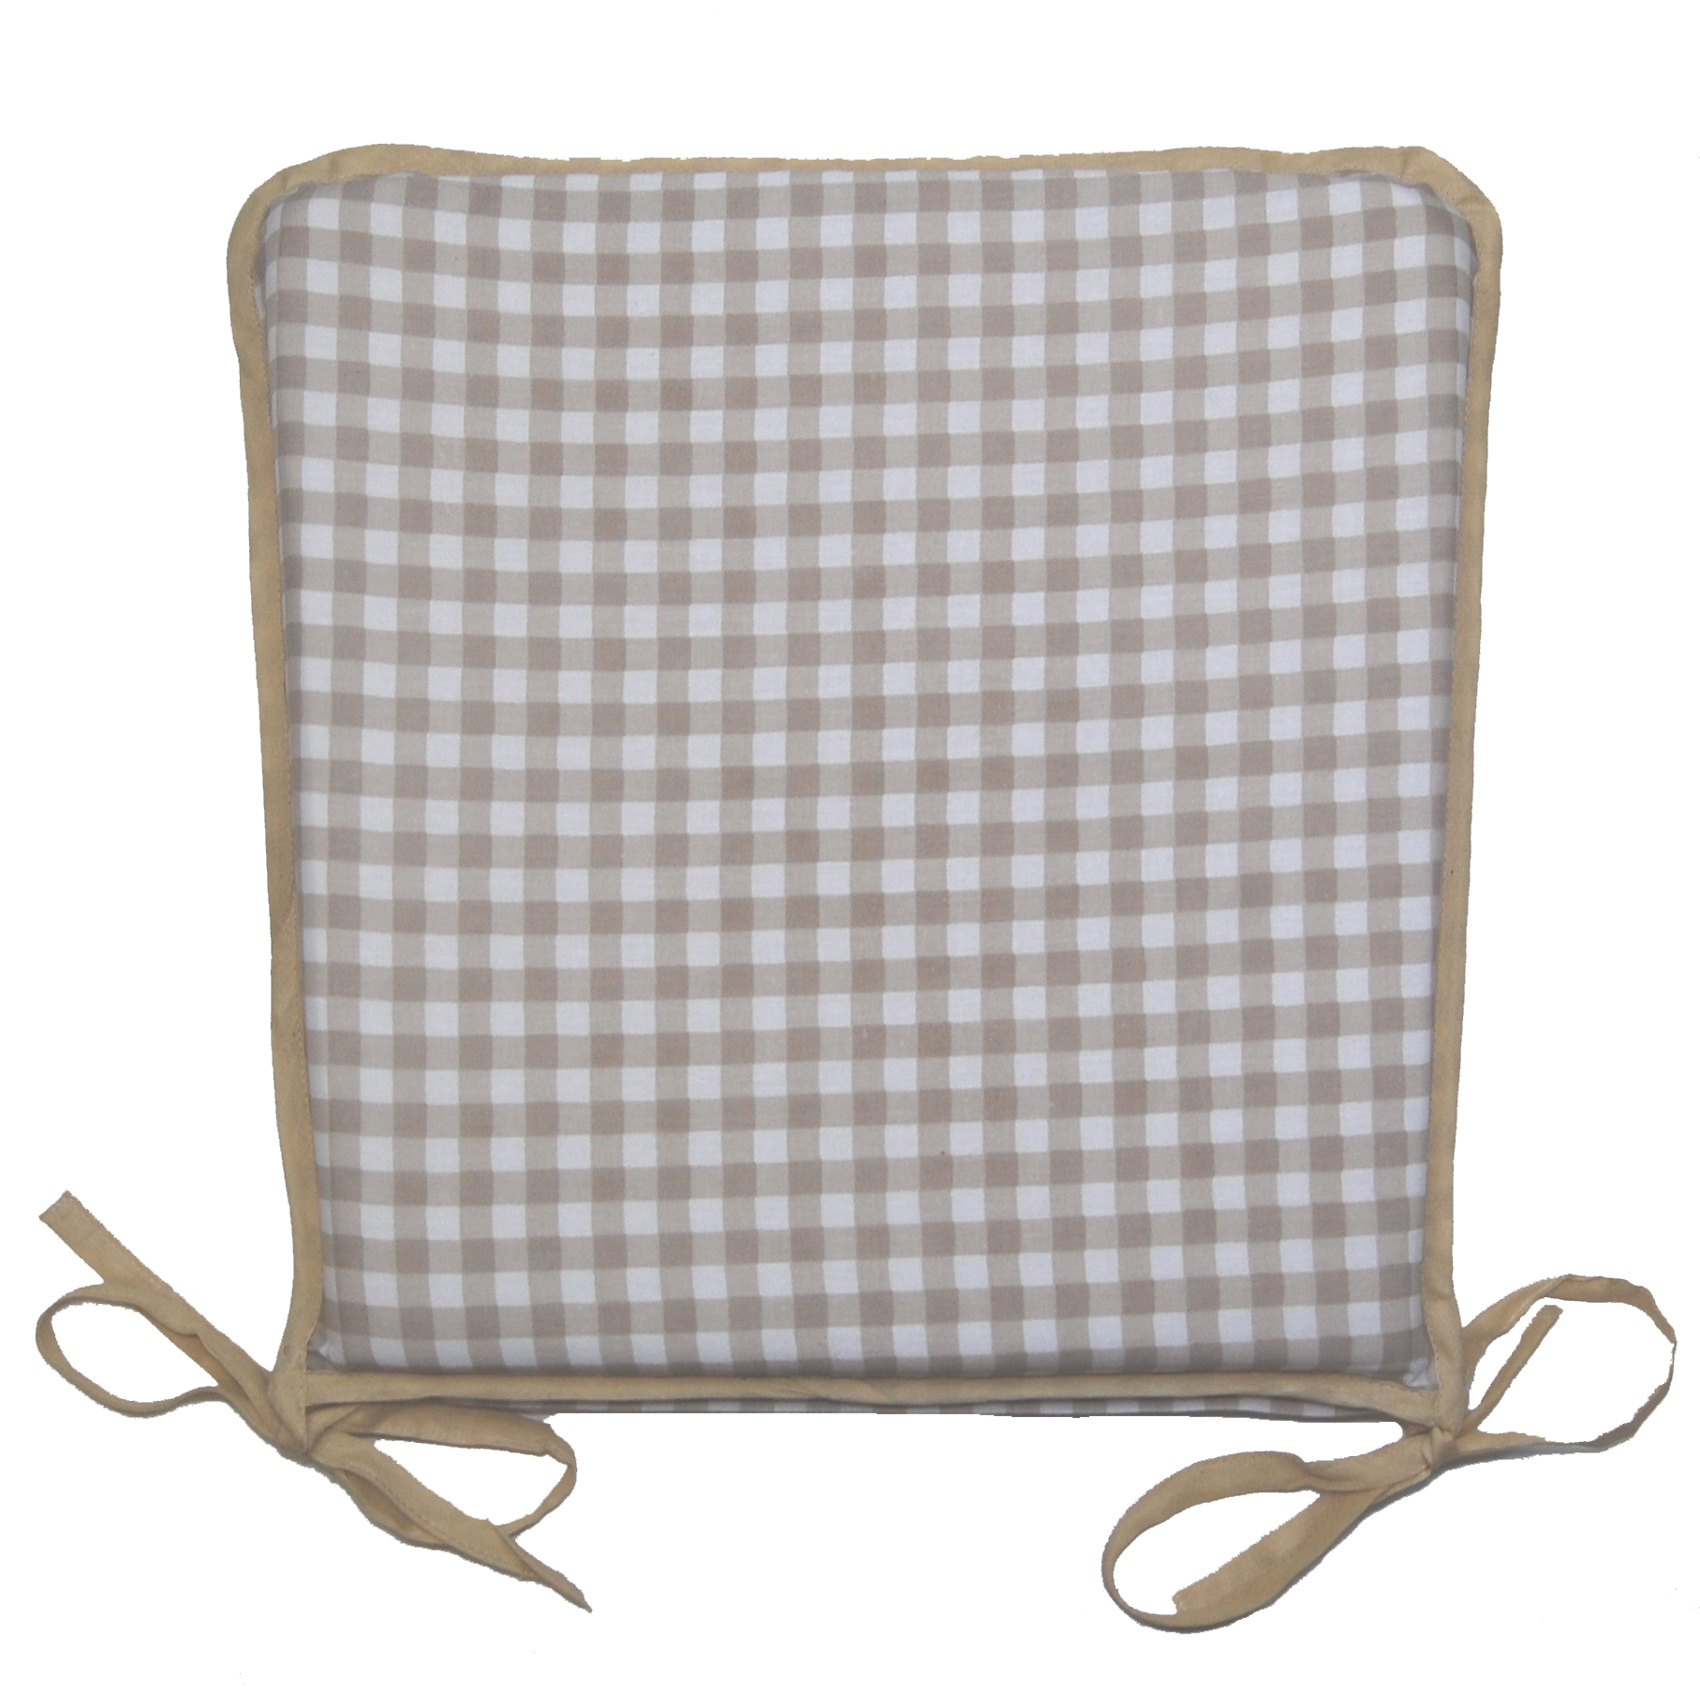 100% Cotton Gingham Check Square Seat Pad Dining Chair ...